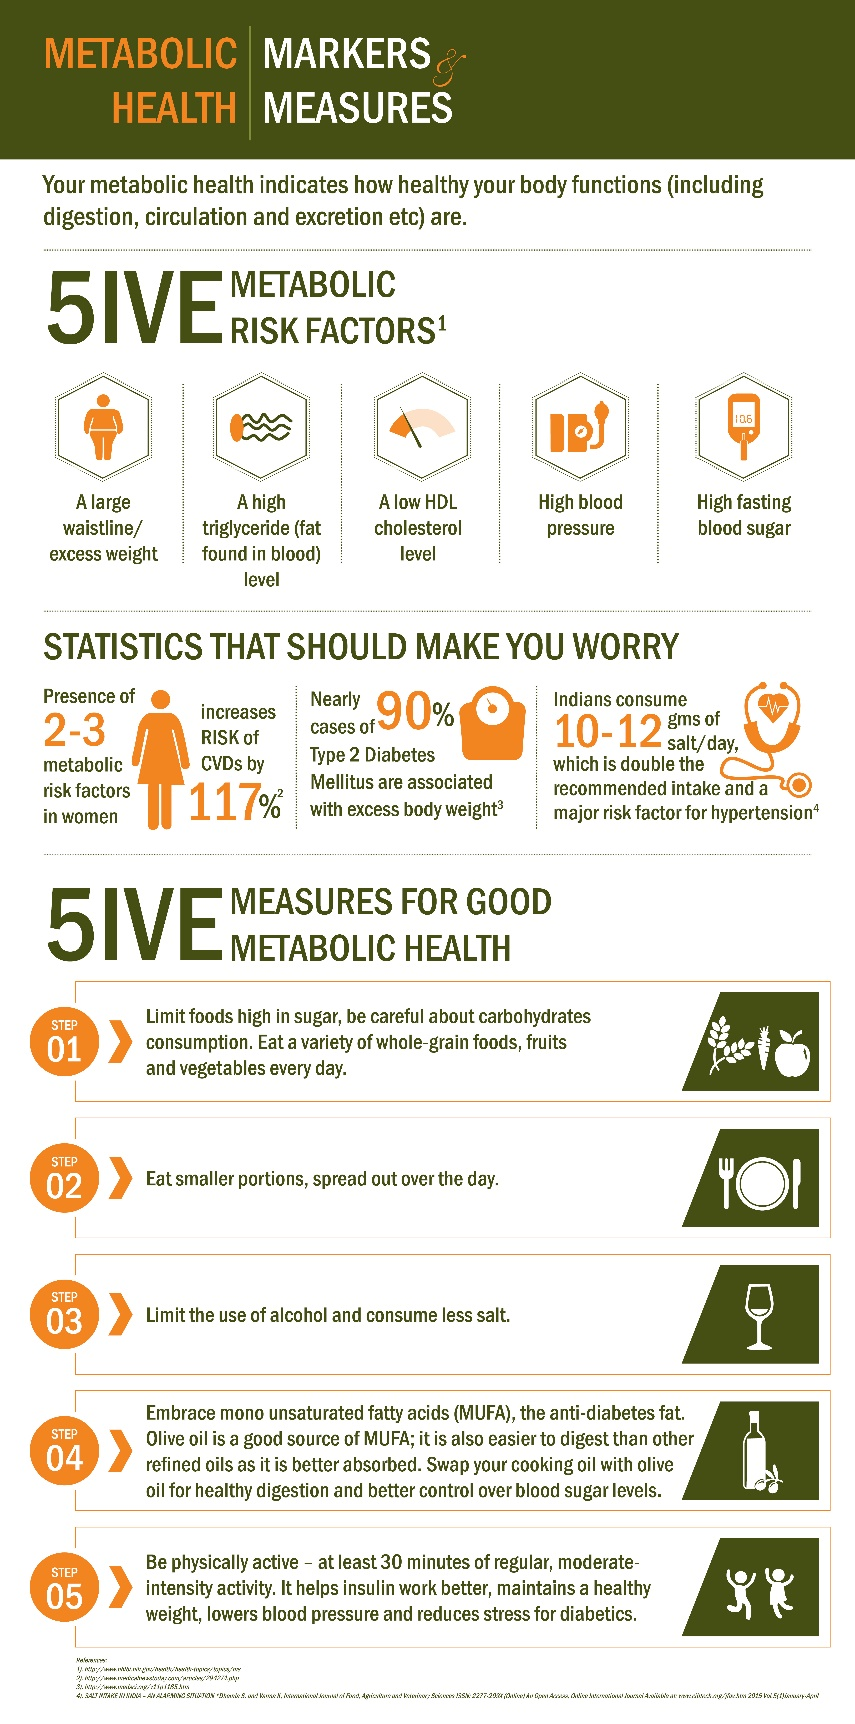 Cargill Metabolic Health Infographic - Markers & Measures